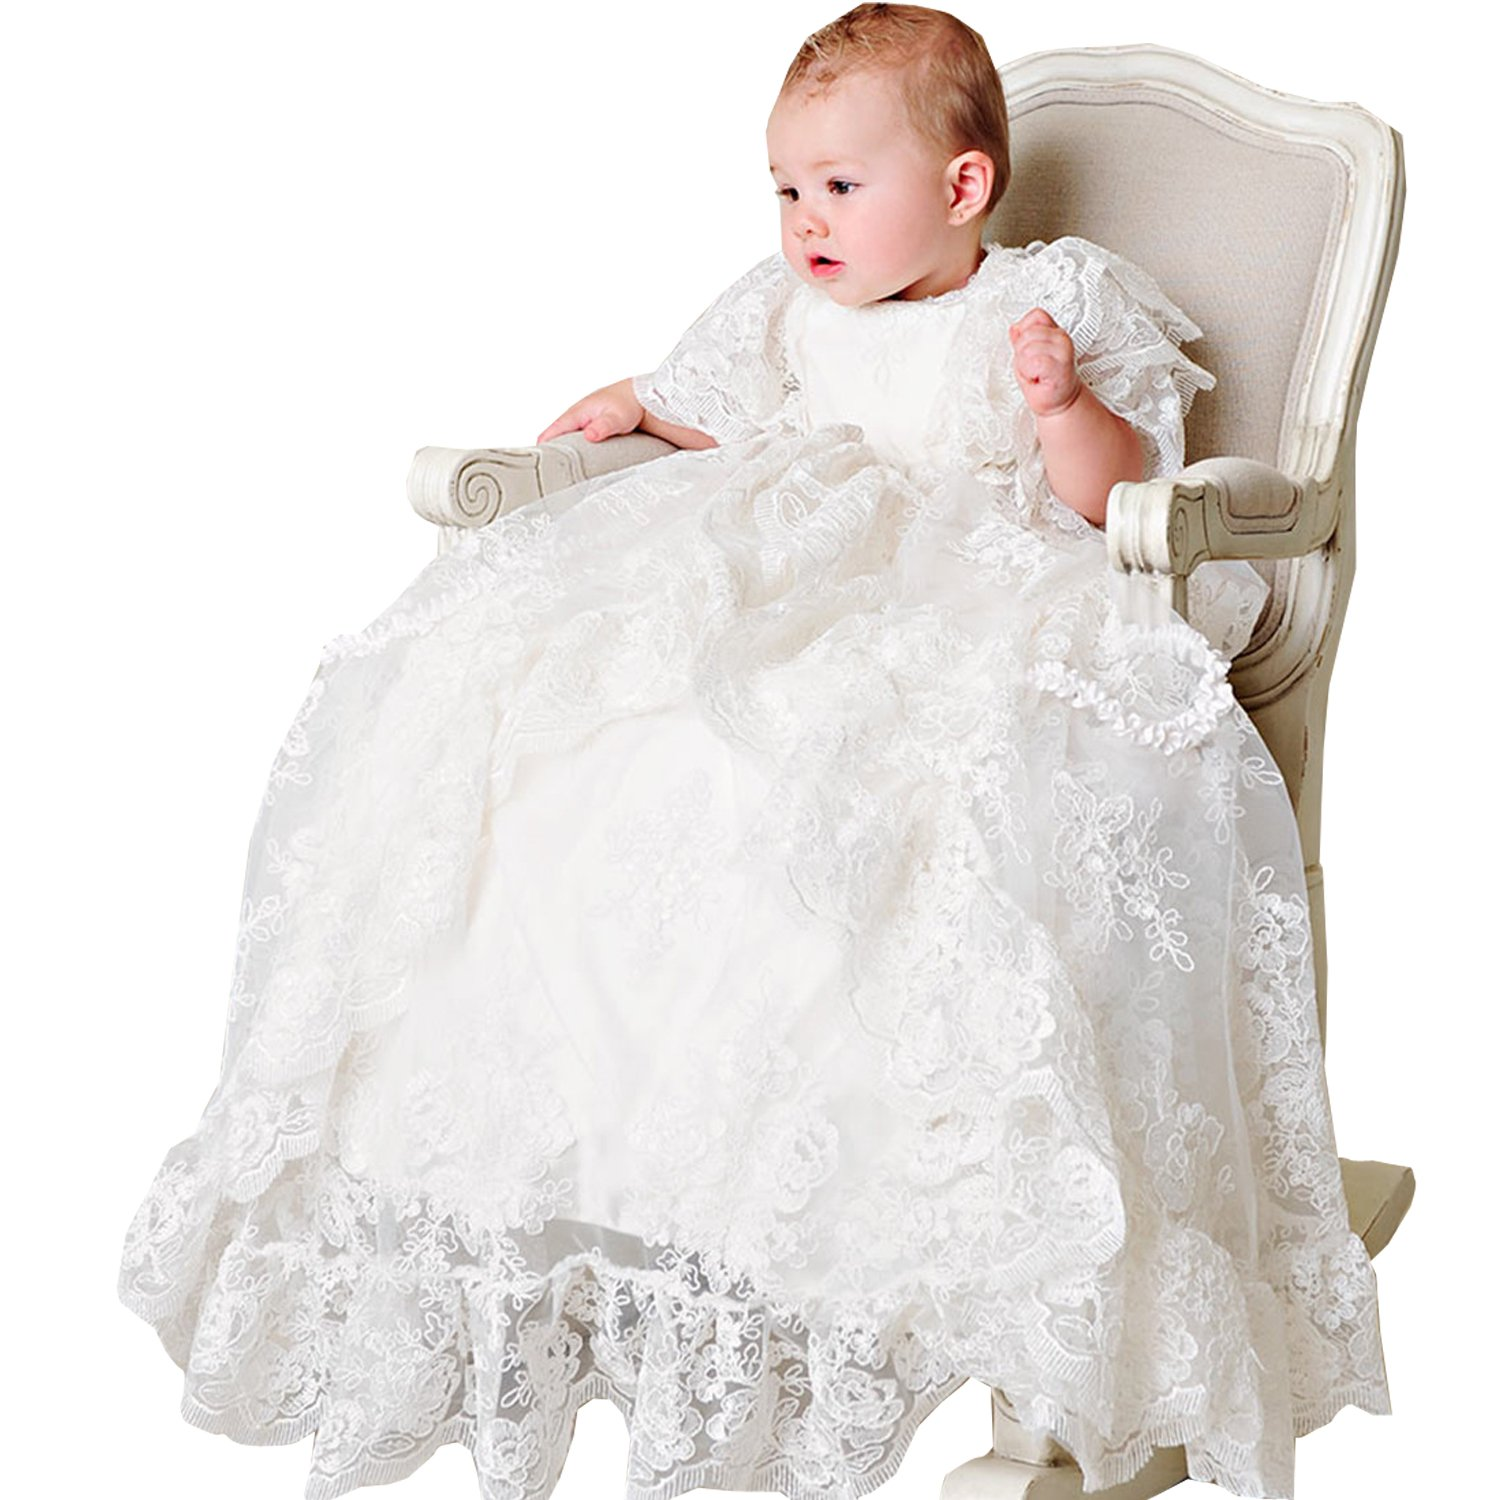 Newdeve Short Sleeves White Lace Christening Baptism Gowns Long (0-3 months) by New Deve